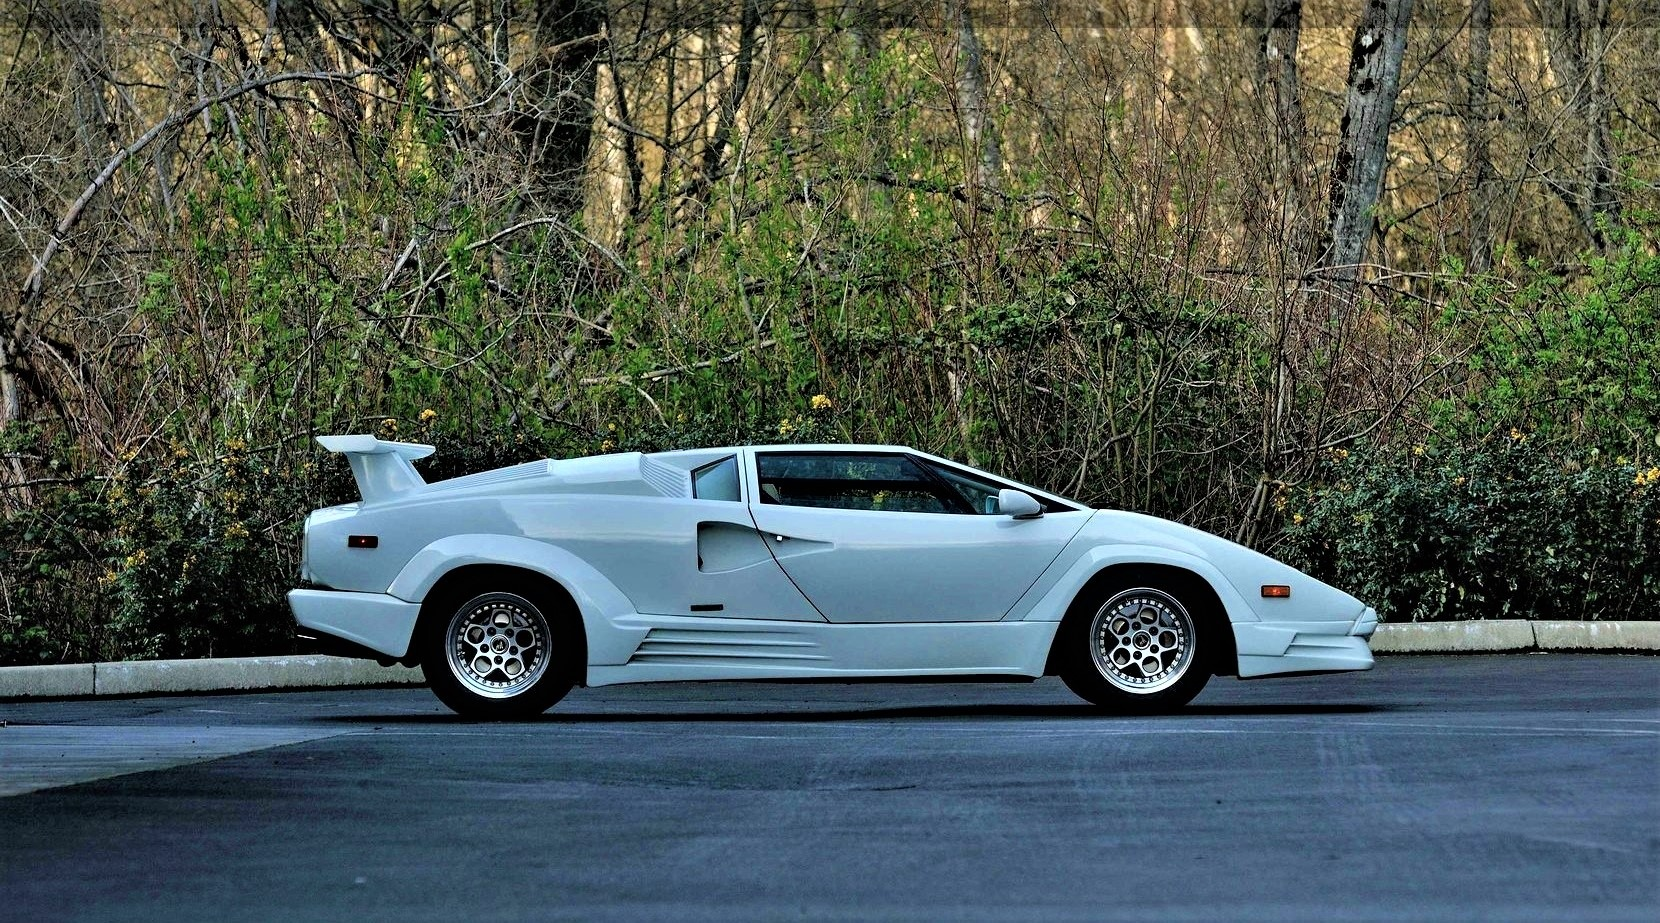 Used 1989 Lamborghini Countach LP112D for sale $295,850 at The Gables Sports Cars in Miami FL 33146 2